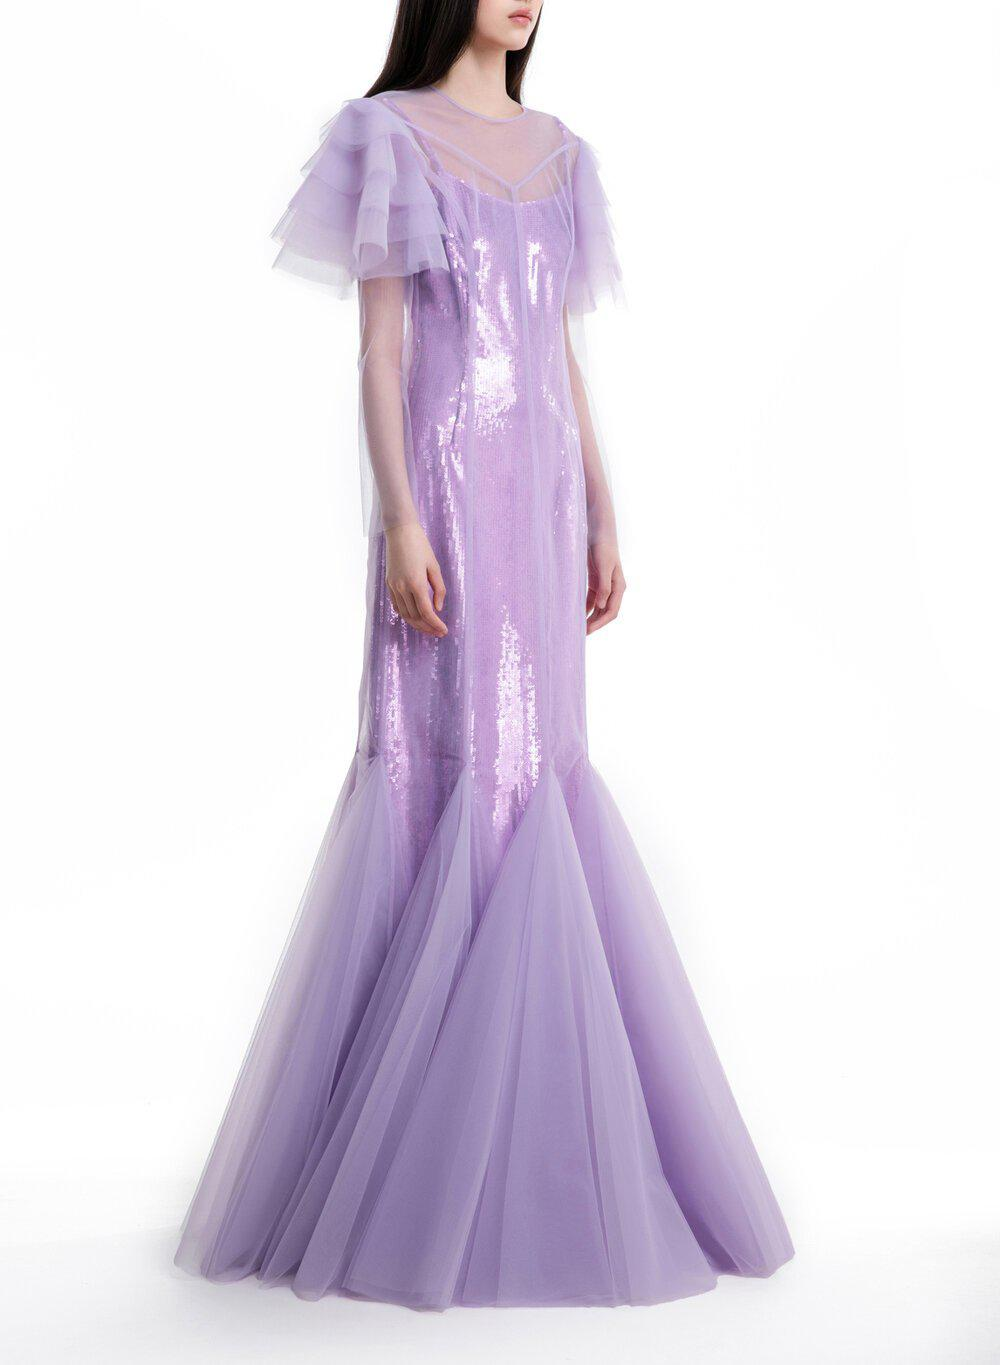 AURORA GOWN LILAC TULLE 2